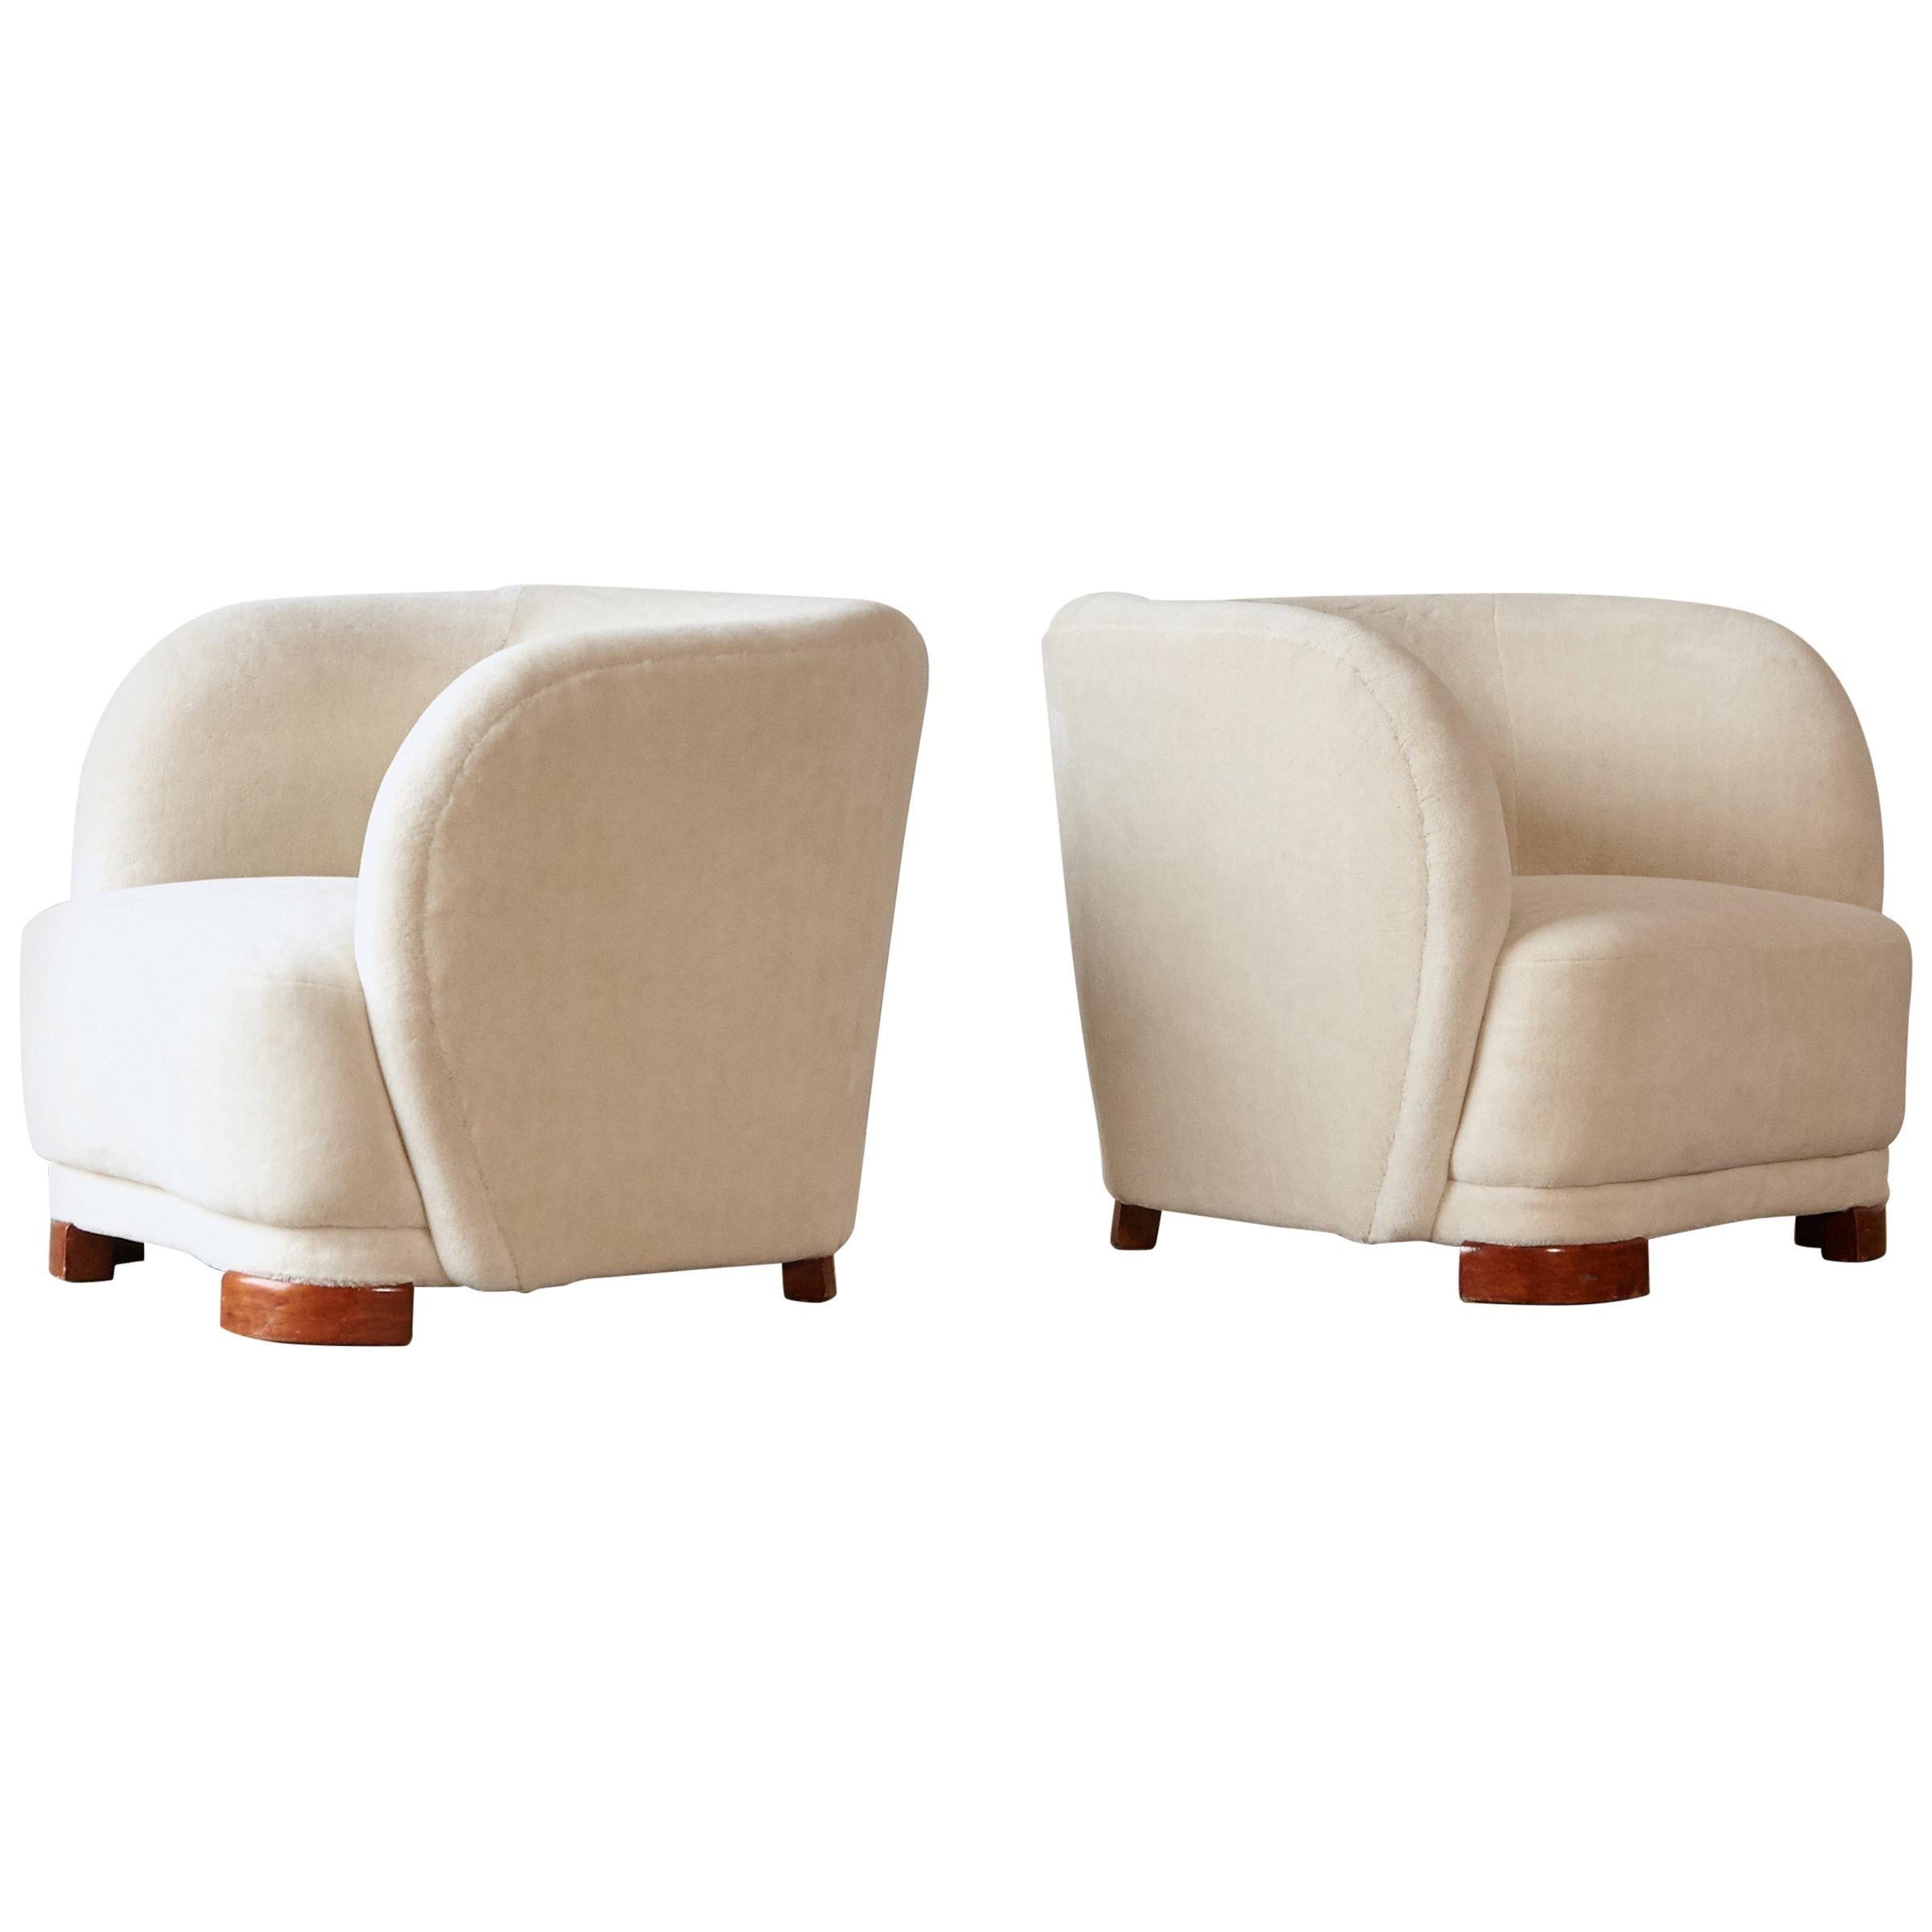 1940s Danish Cabinetmaker Lounge Chairs, Newly Upholstered in Alpaca